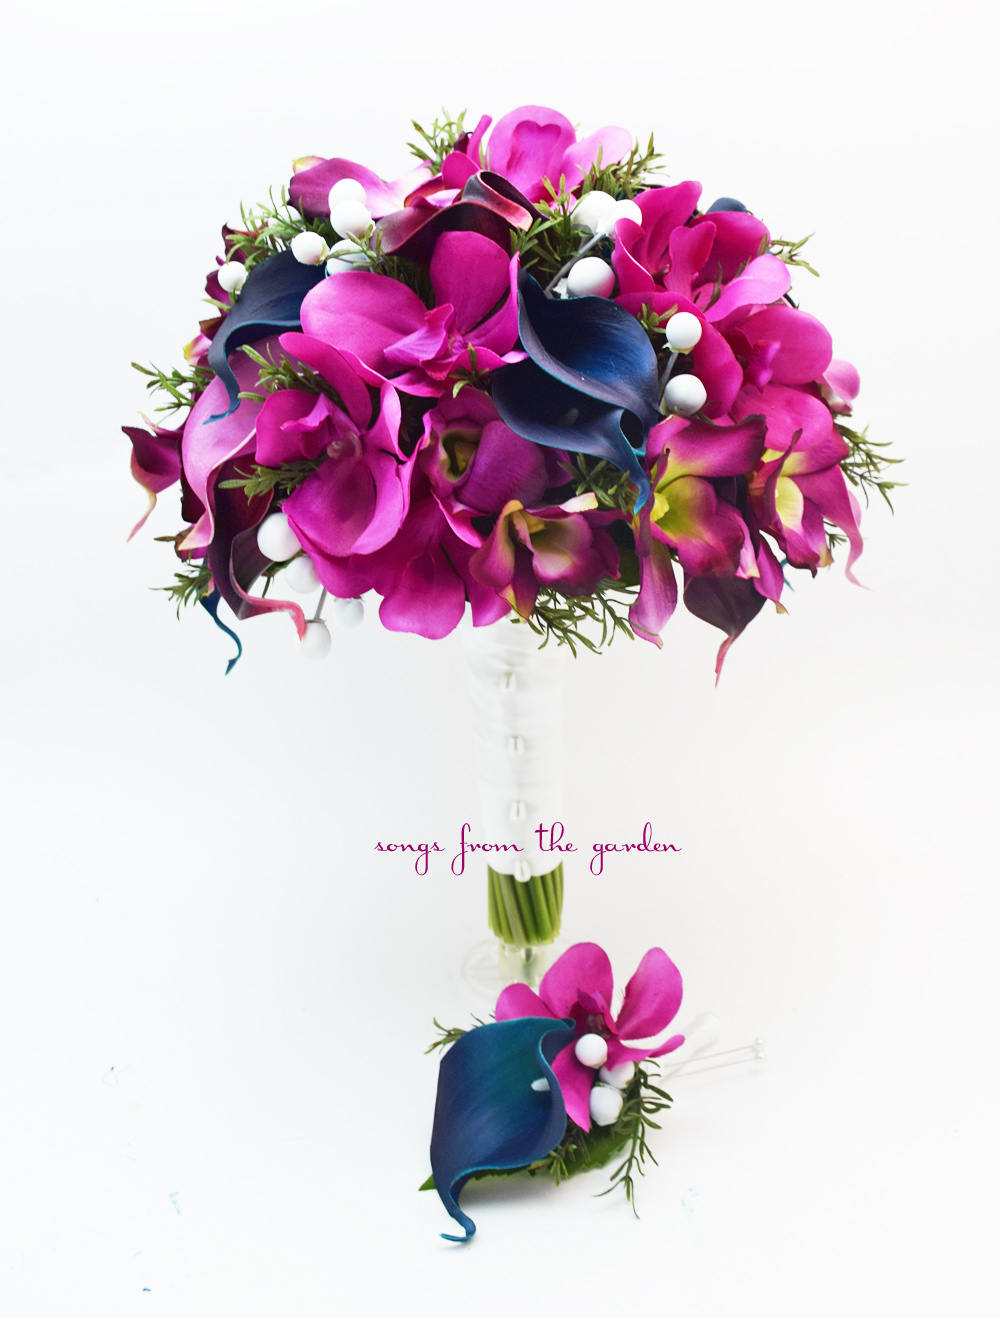 Orchids Callas Rosemary Berries - Bridal Bouquet Groom's Boutonniere - Fuchsia, Navy and White